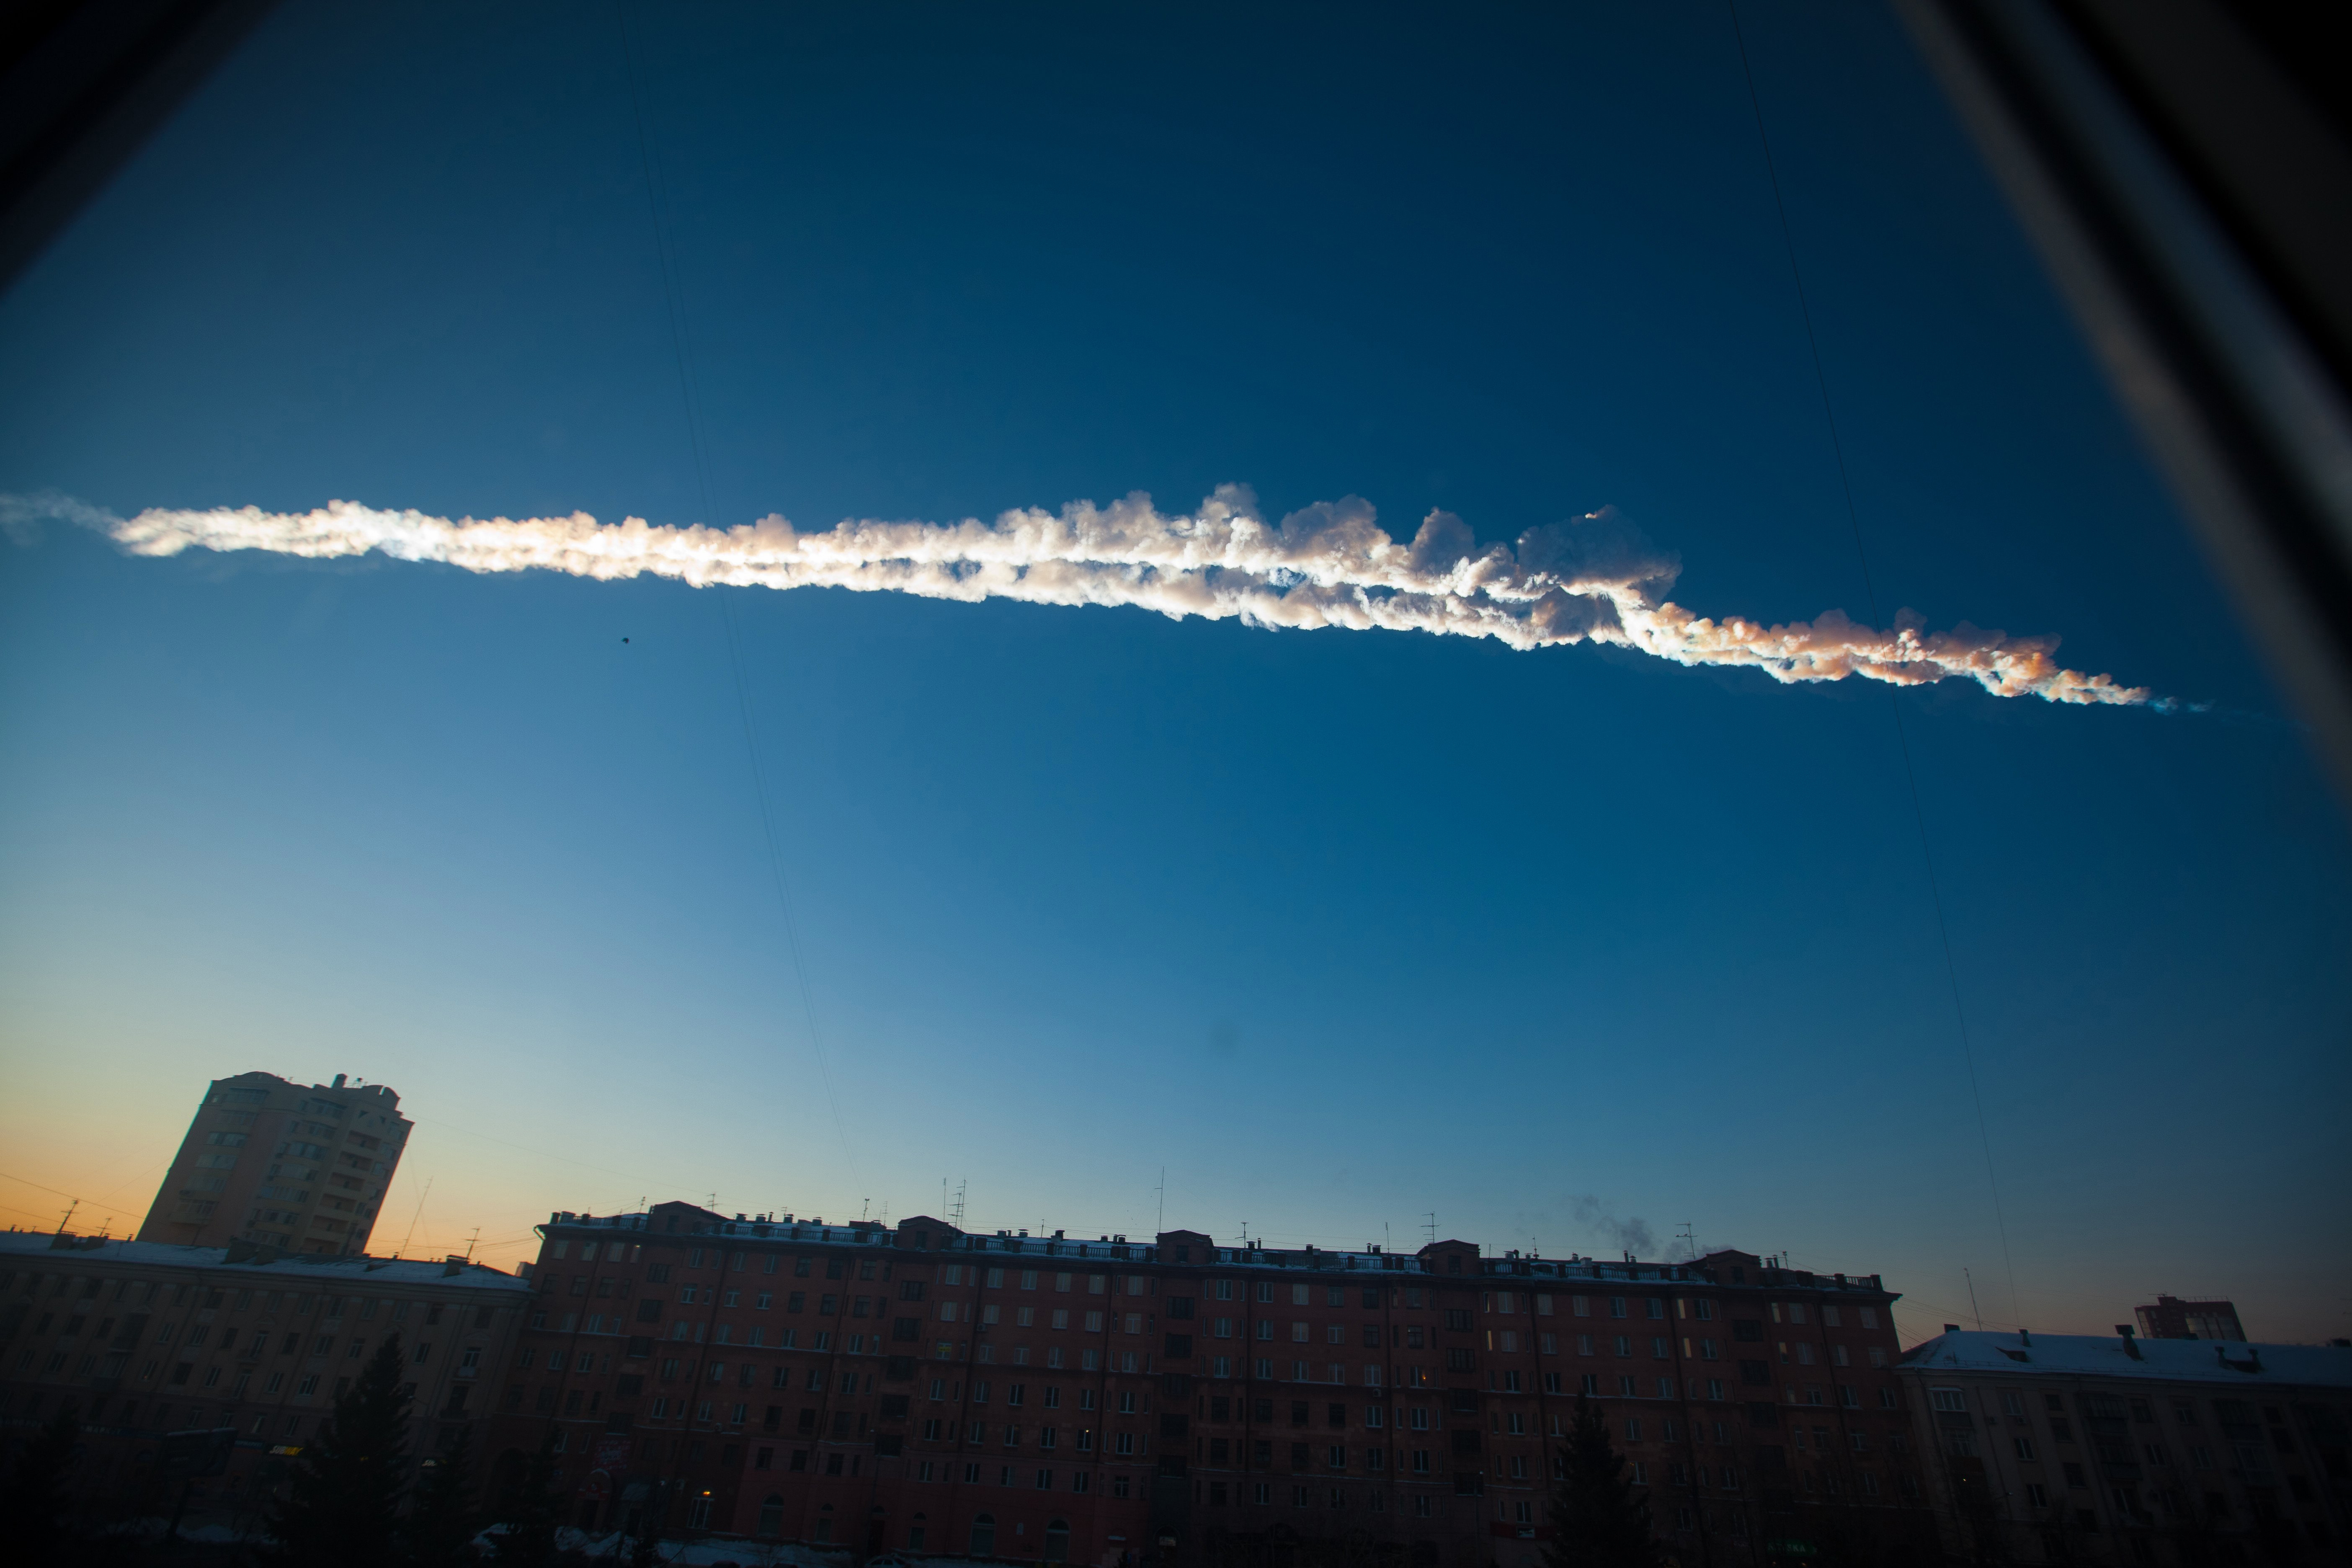 This image from the Russian city of Chelyabinsk shows the contrail of a asteroid, moments before it exploded.